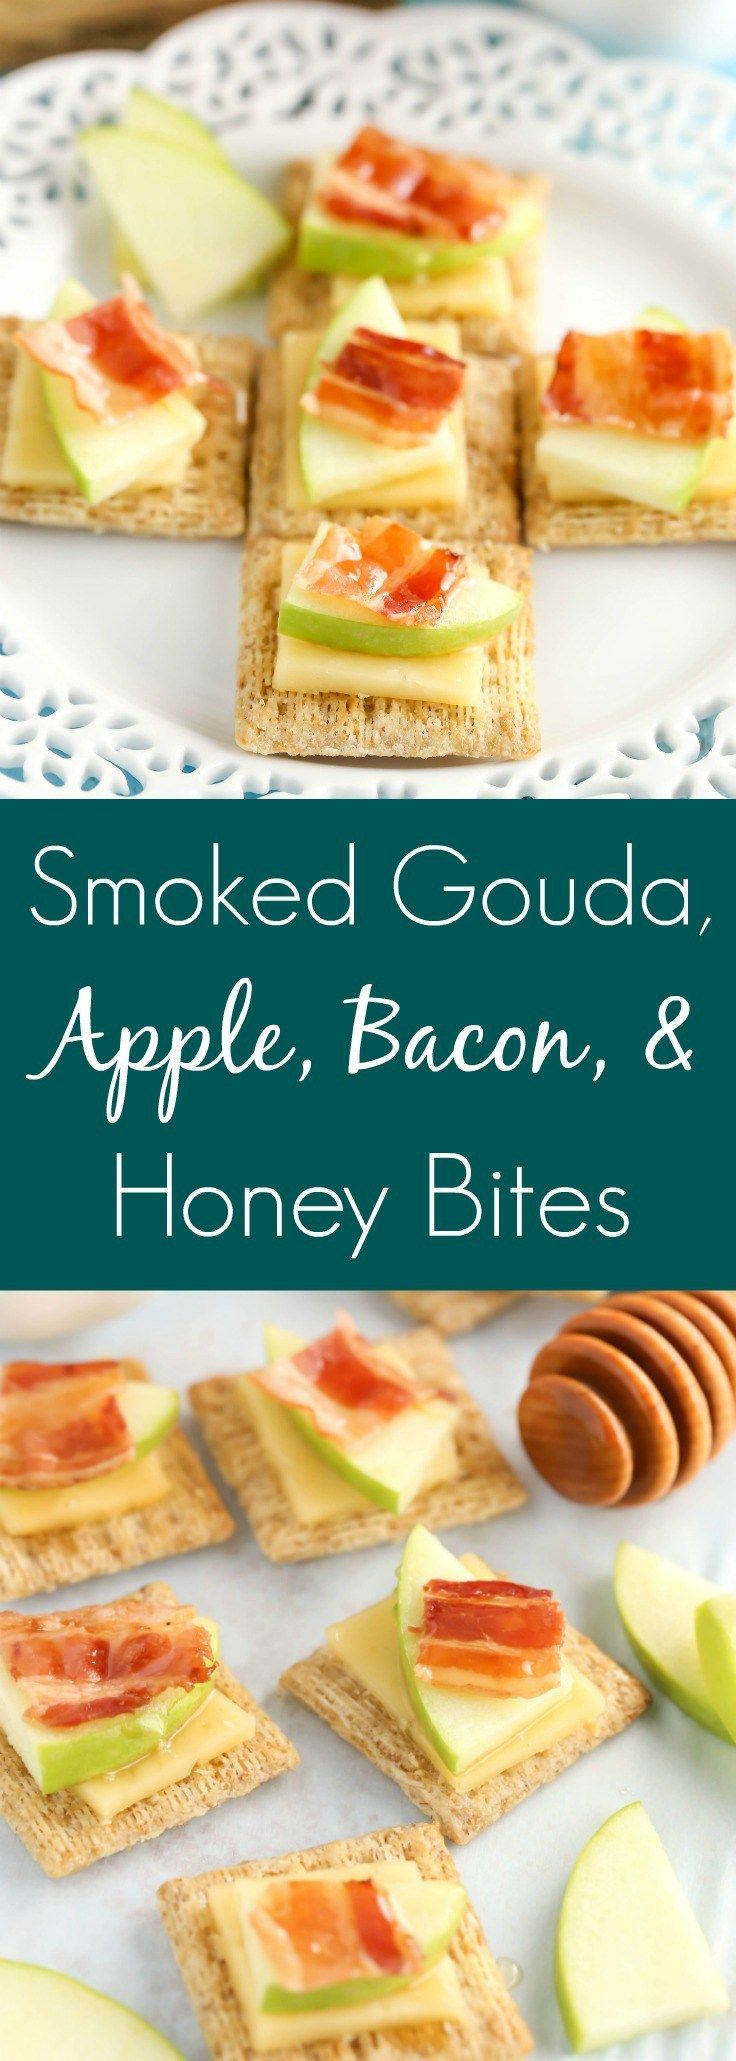 These Smoked Gouda, Apple, Bacon, and Honey Bites are a delicious andeasy appetizer! #MadeForMore #Walmart #ad